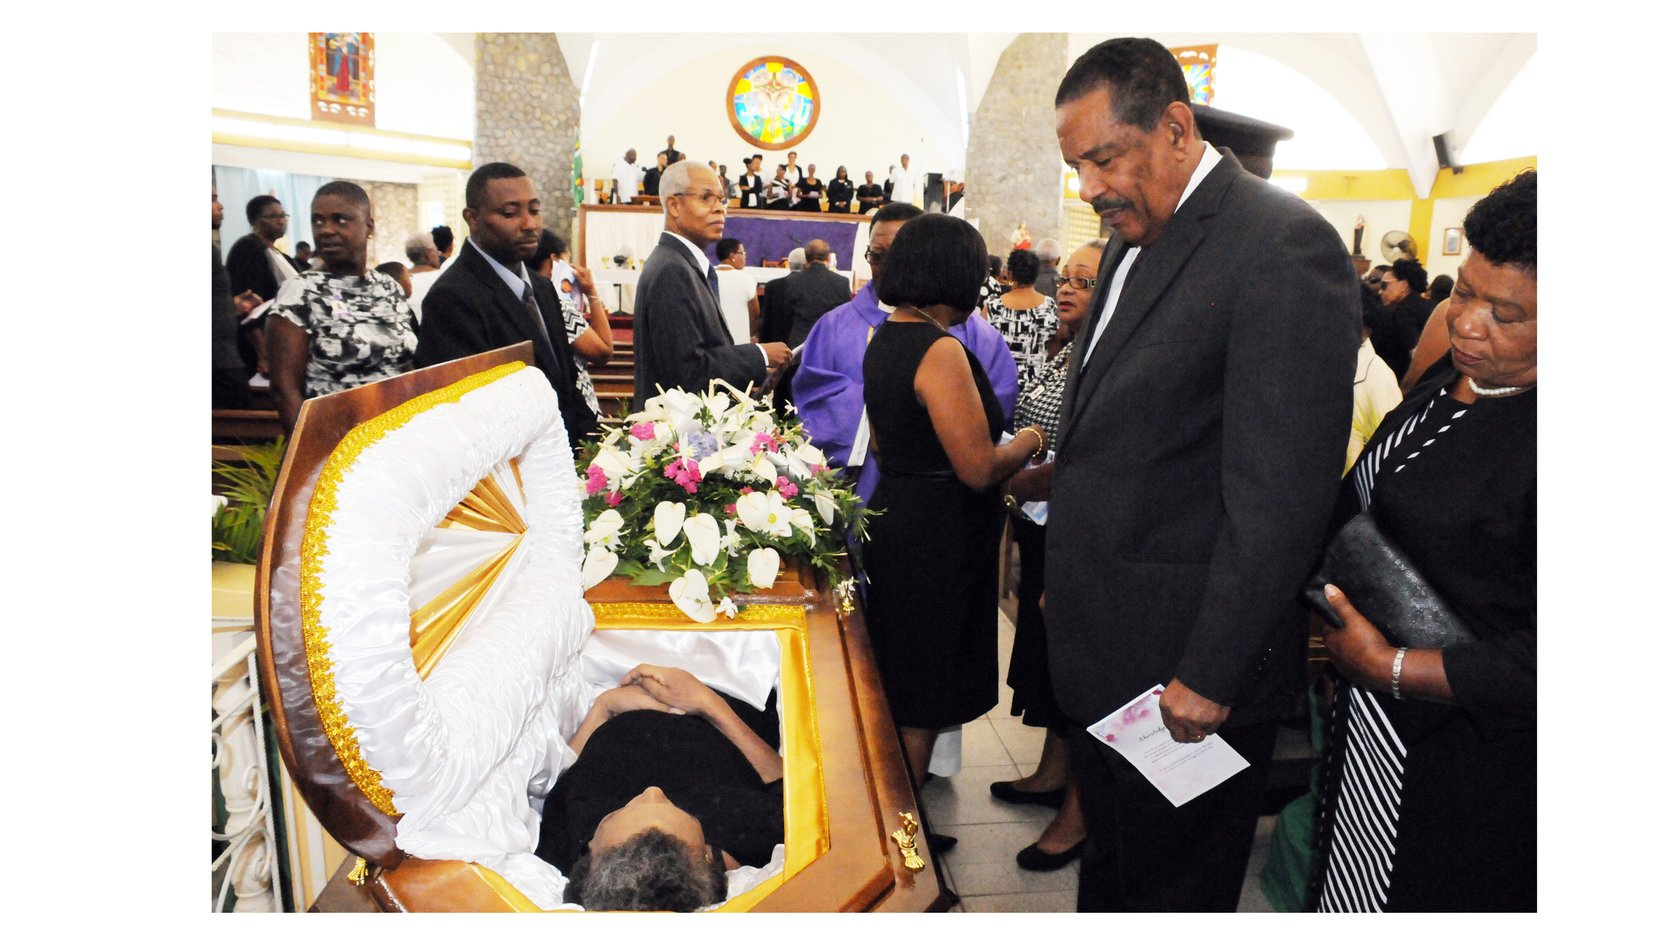 President Charles Savarin at the funeral of Alex Phillip, the late Clerk of the House of Assembly